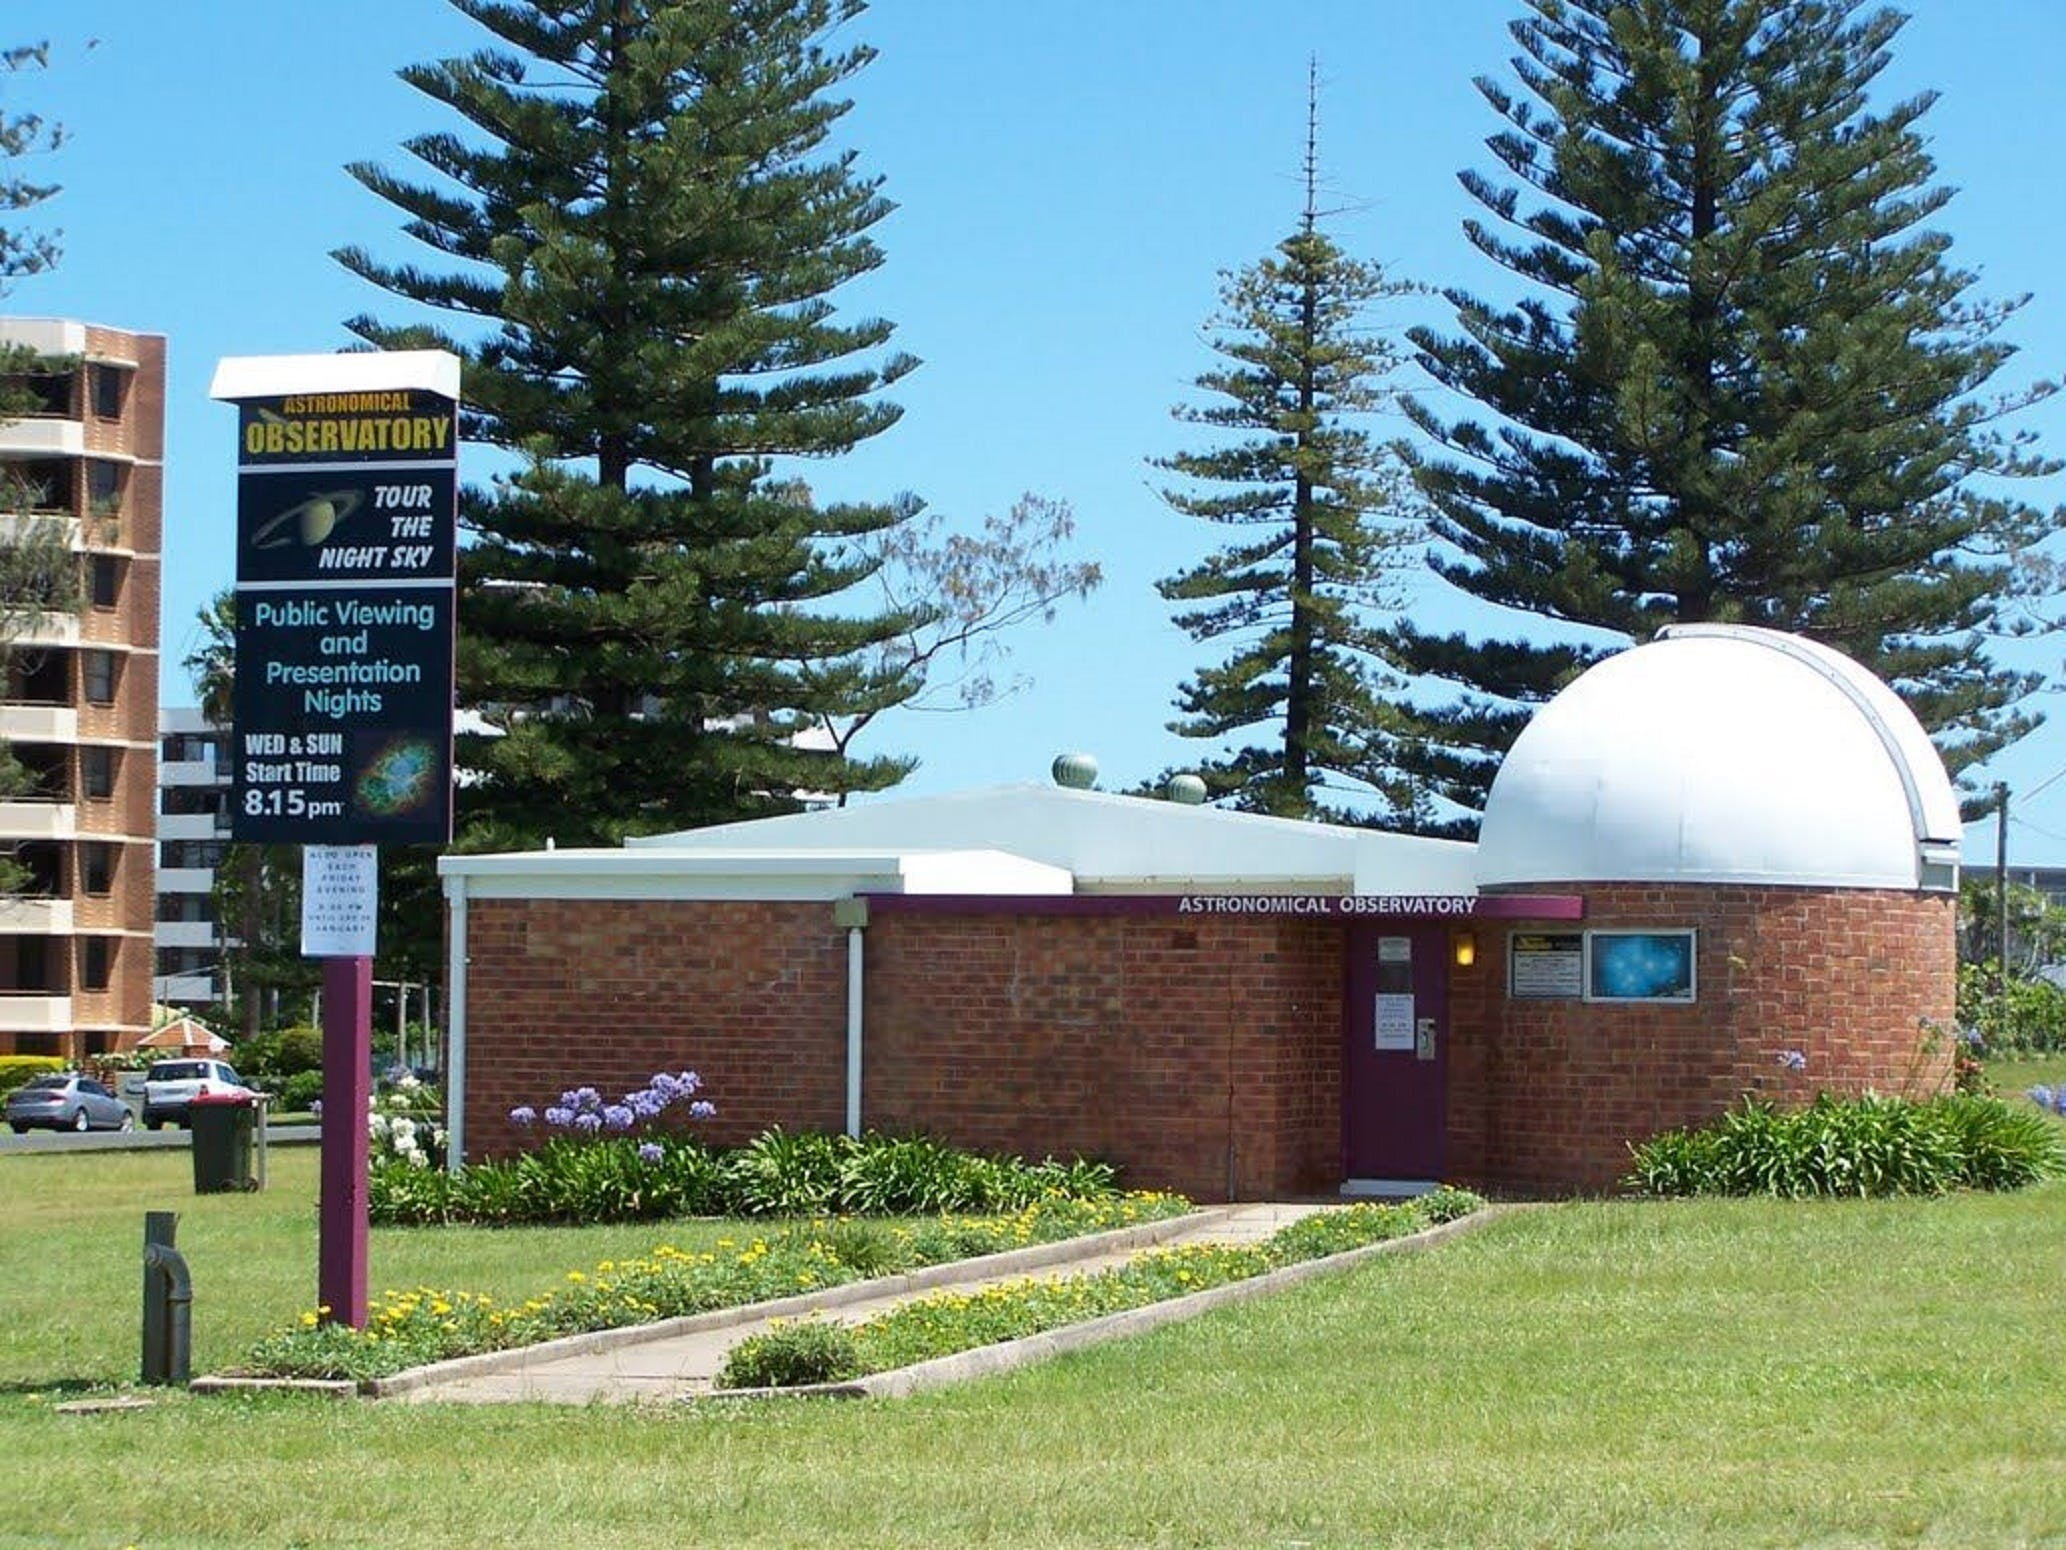 Port Macquarie Astronomical Observatory - Hotel Accommodation